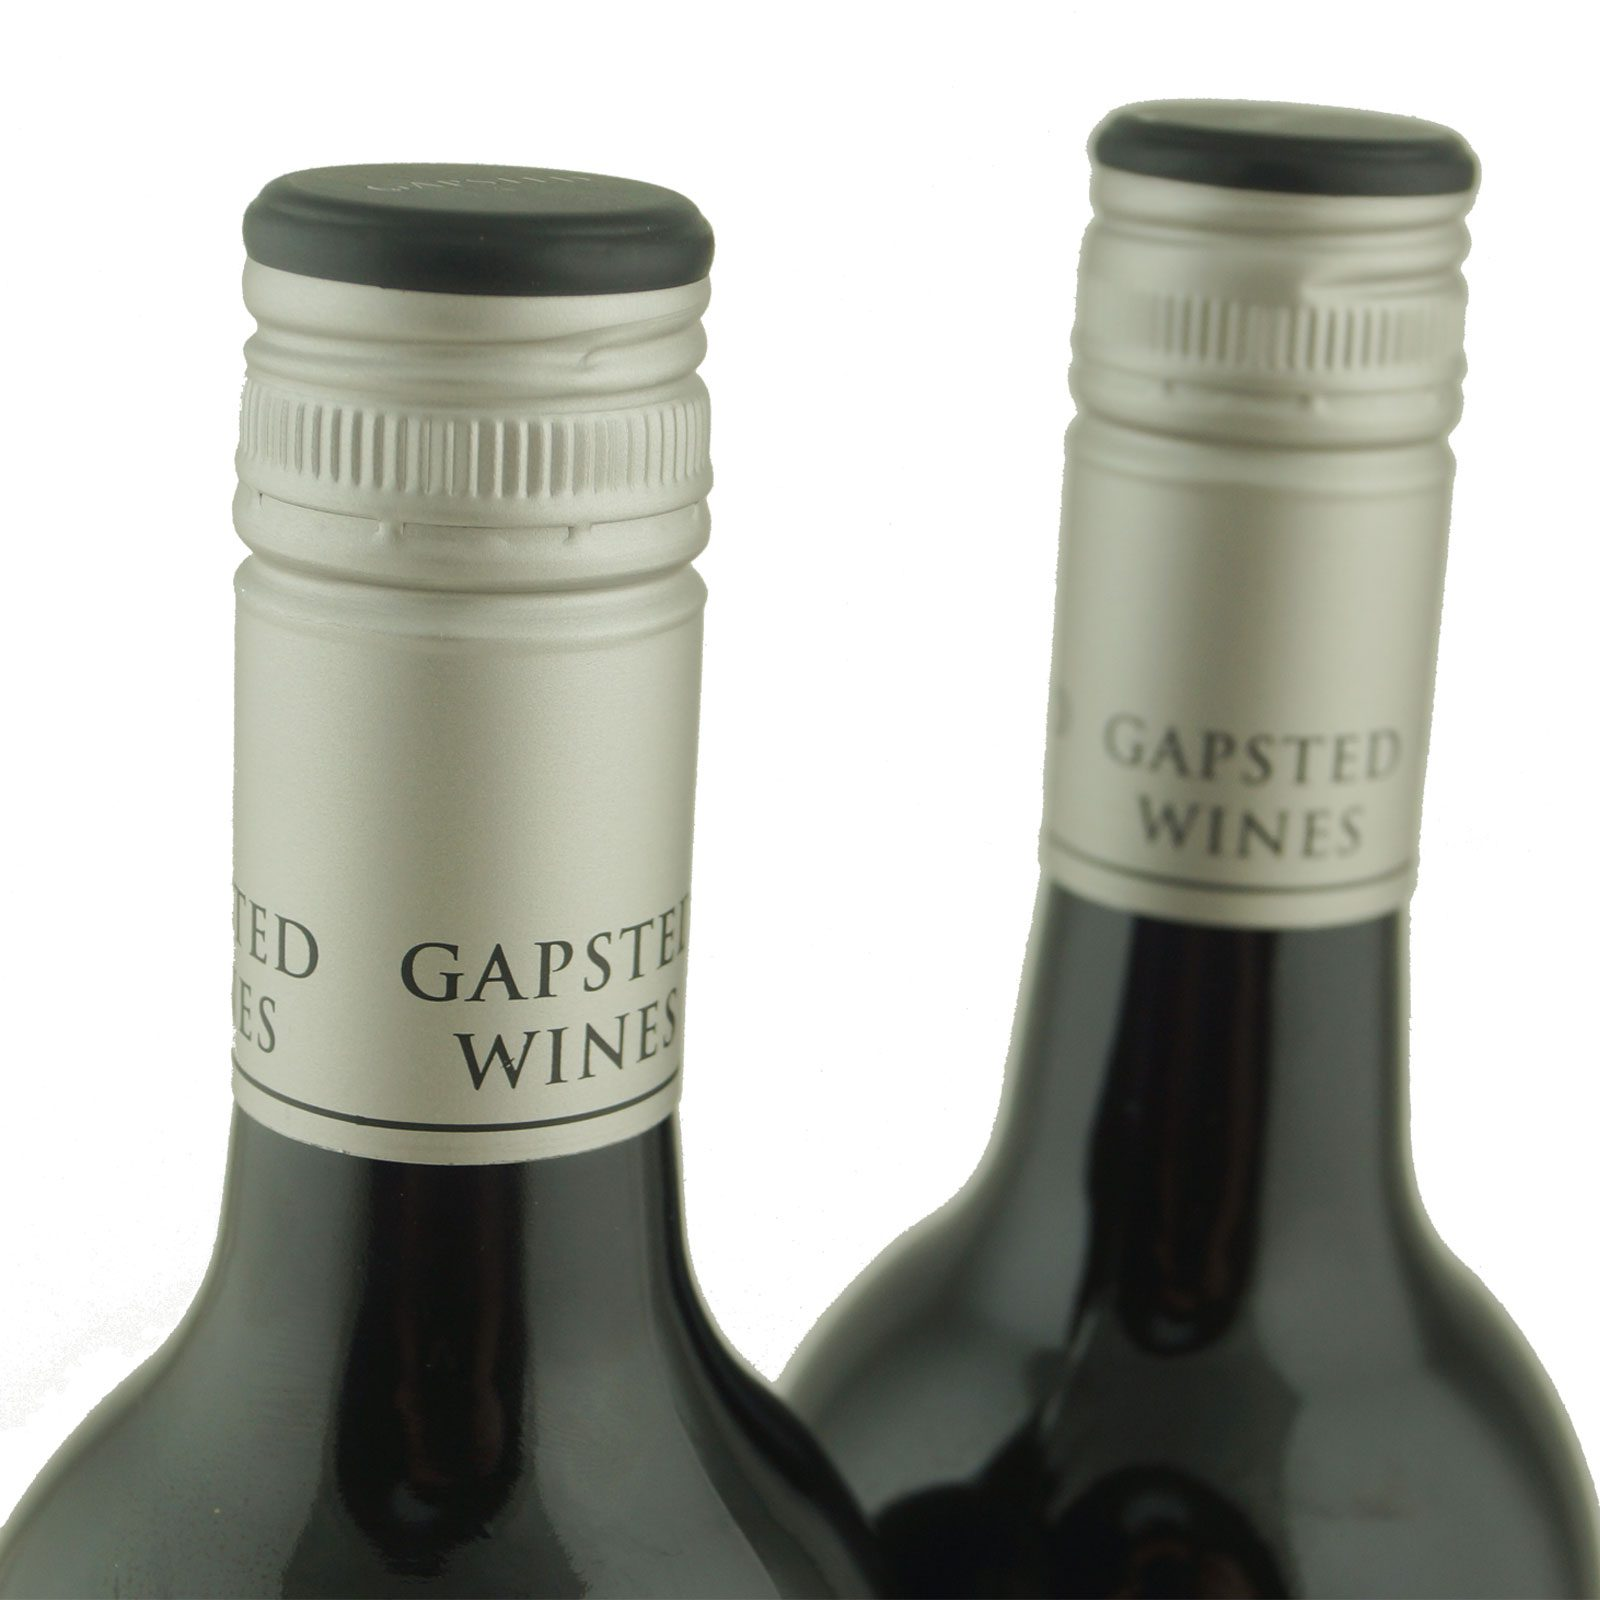 products-gapsted-cabernet-merlot-2016-d